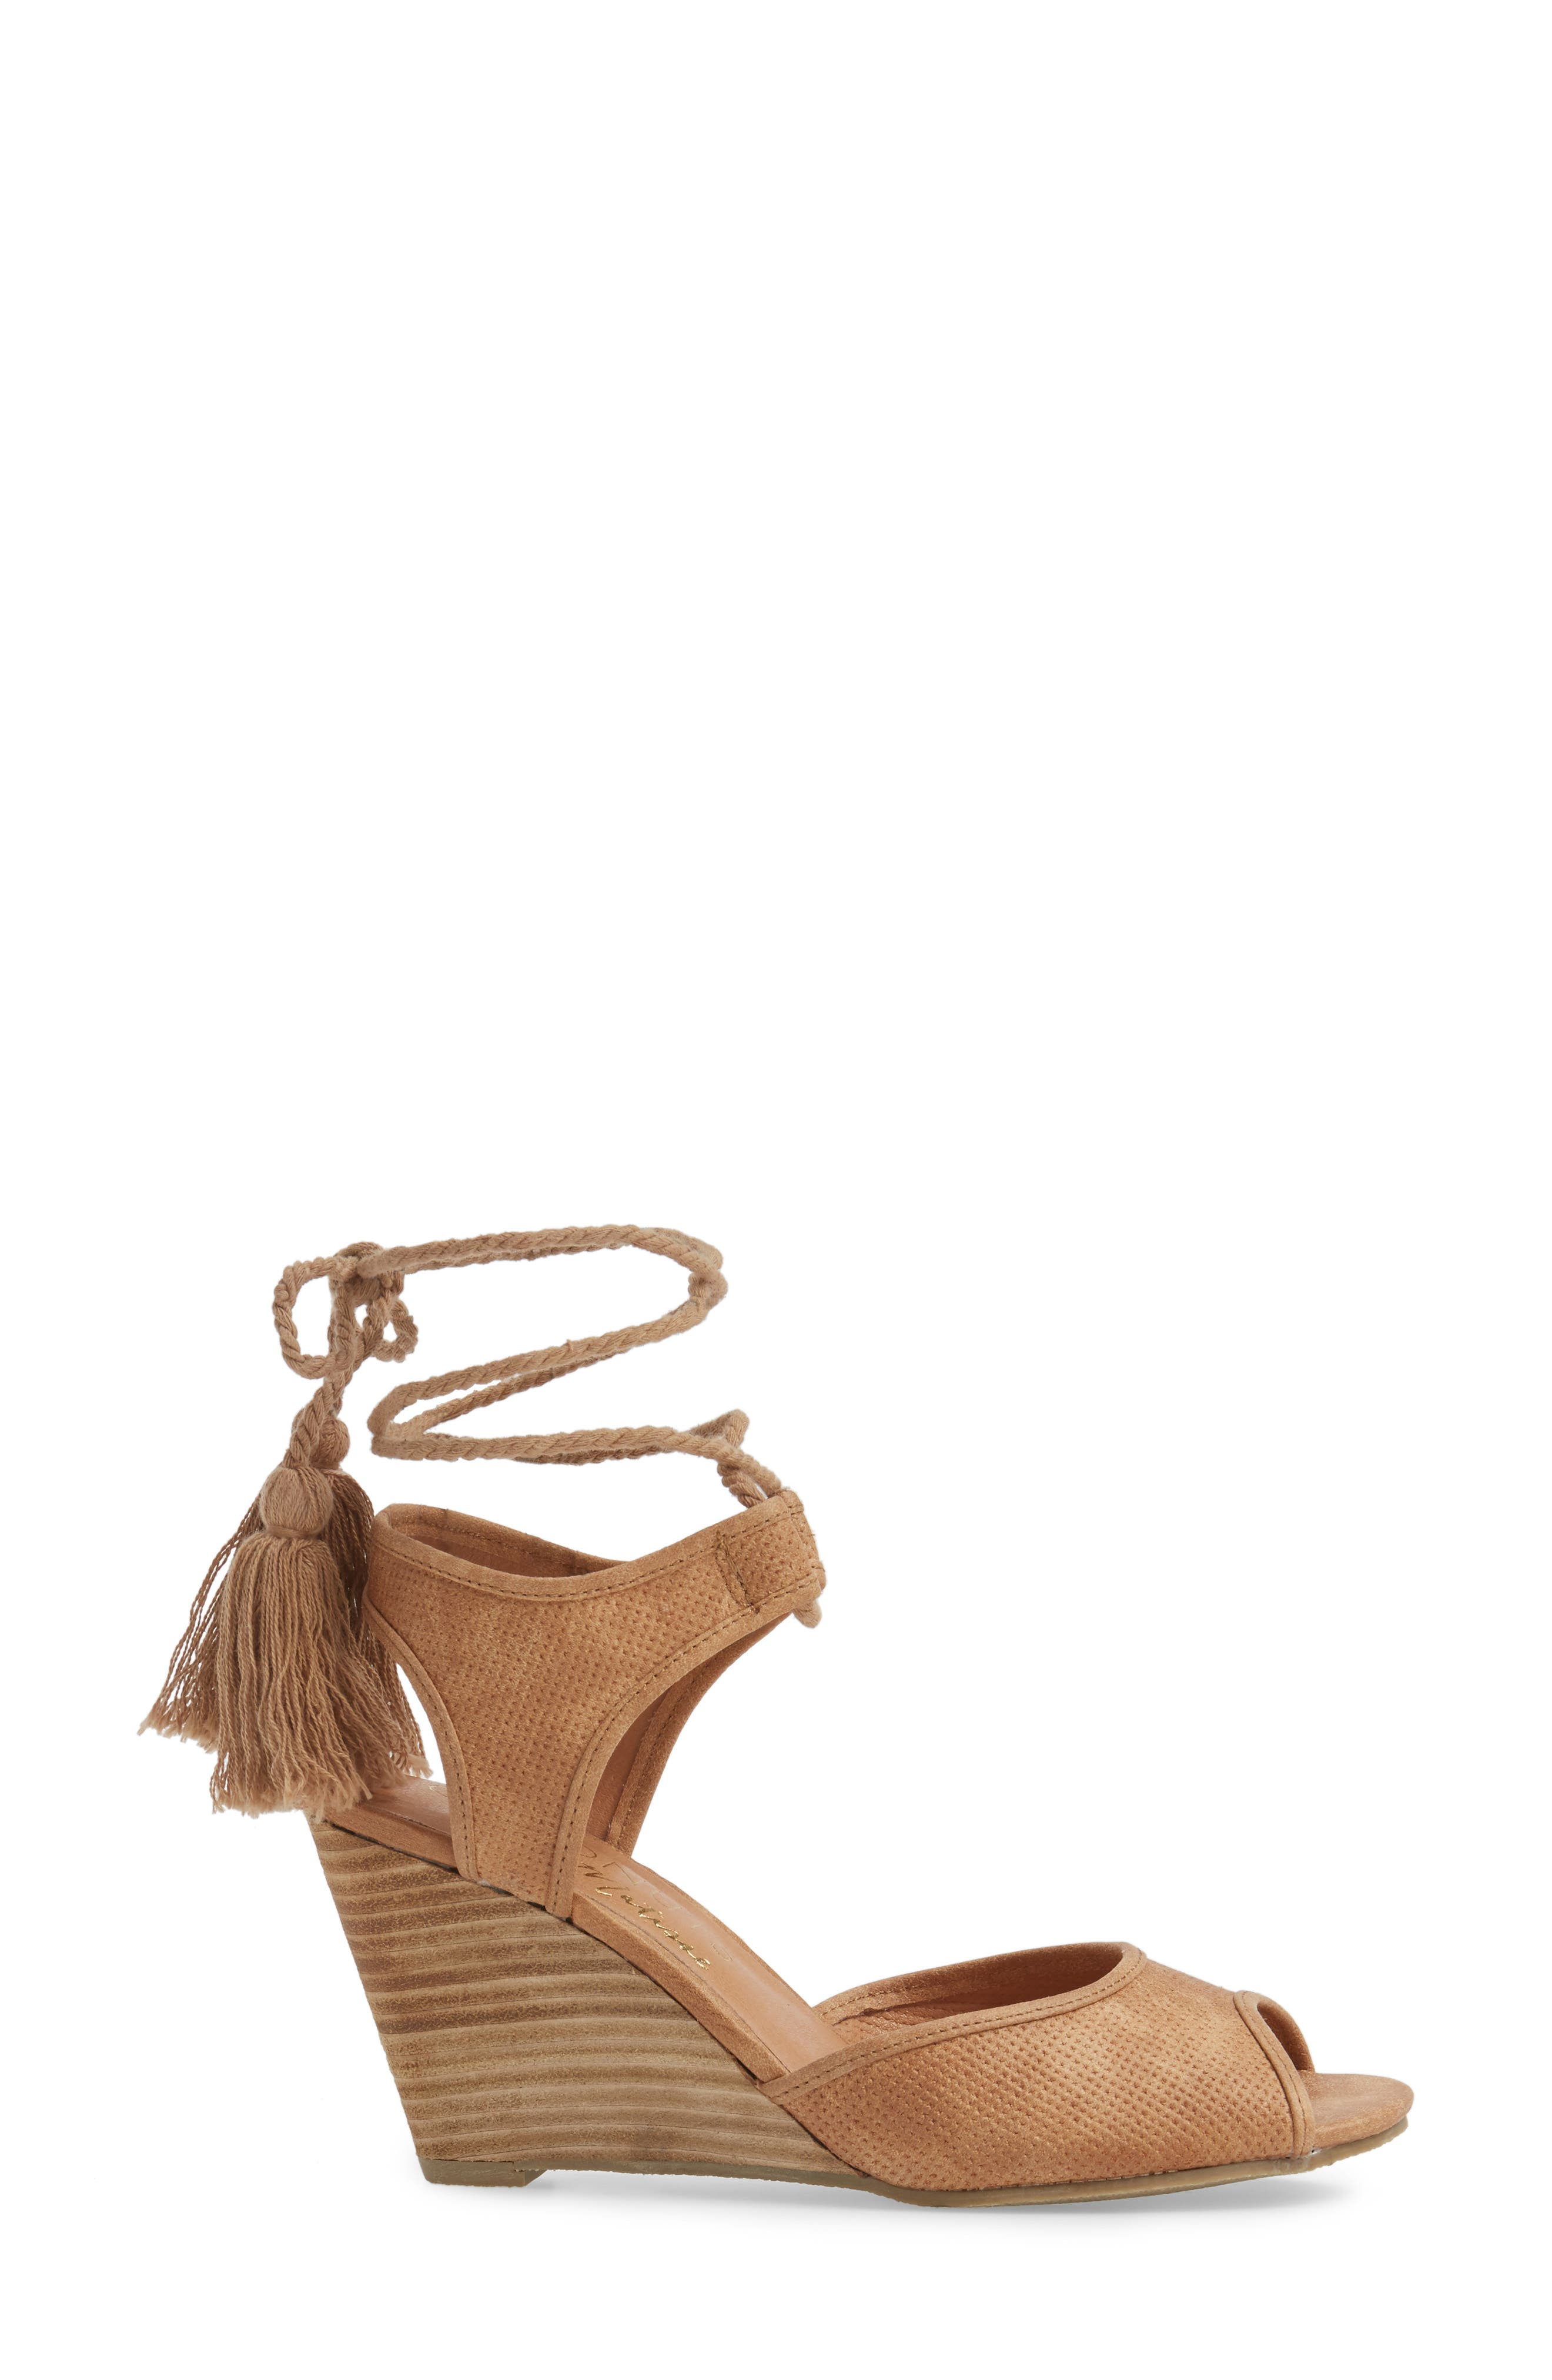 Alternate Image 3  - Coconuts by Matisse Unify Wedge Sandal (Women)